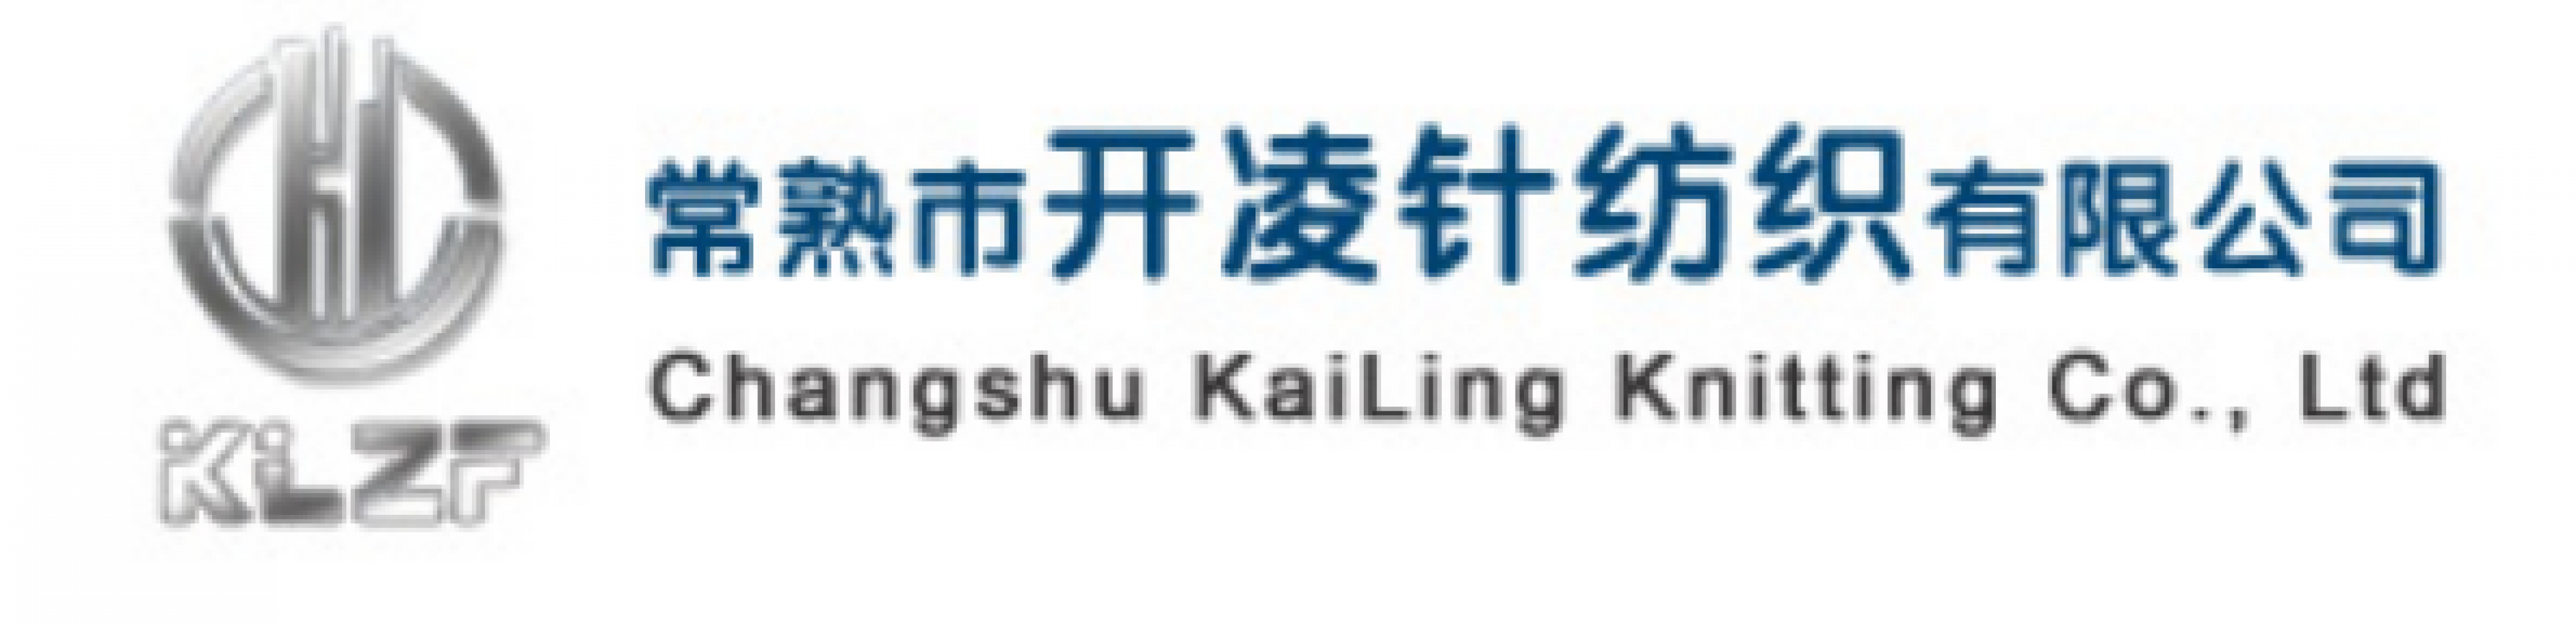 CHANGSHU KAILING KNITTING CO.,LTD